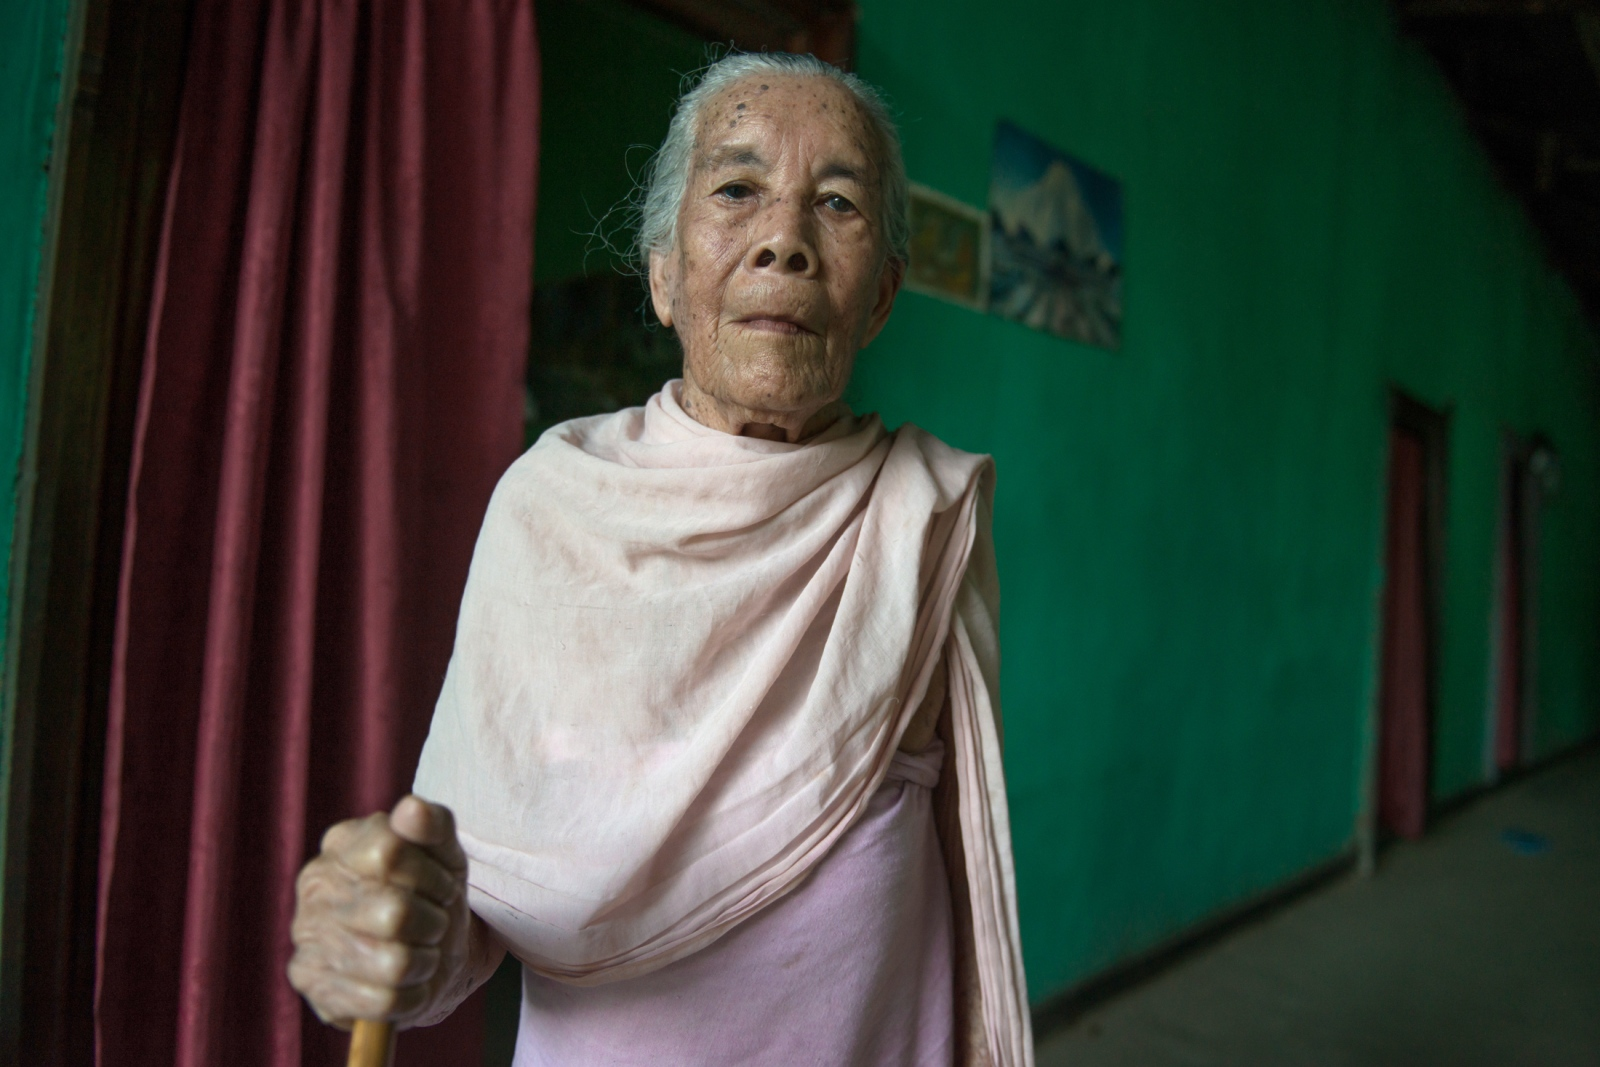 Sana Hanbi, a 92-year old resident of the village of Thanga Tongbram, poses for a portrait.